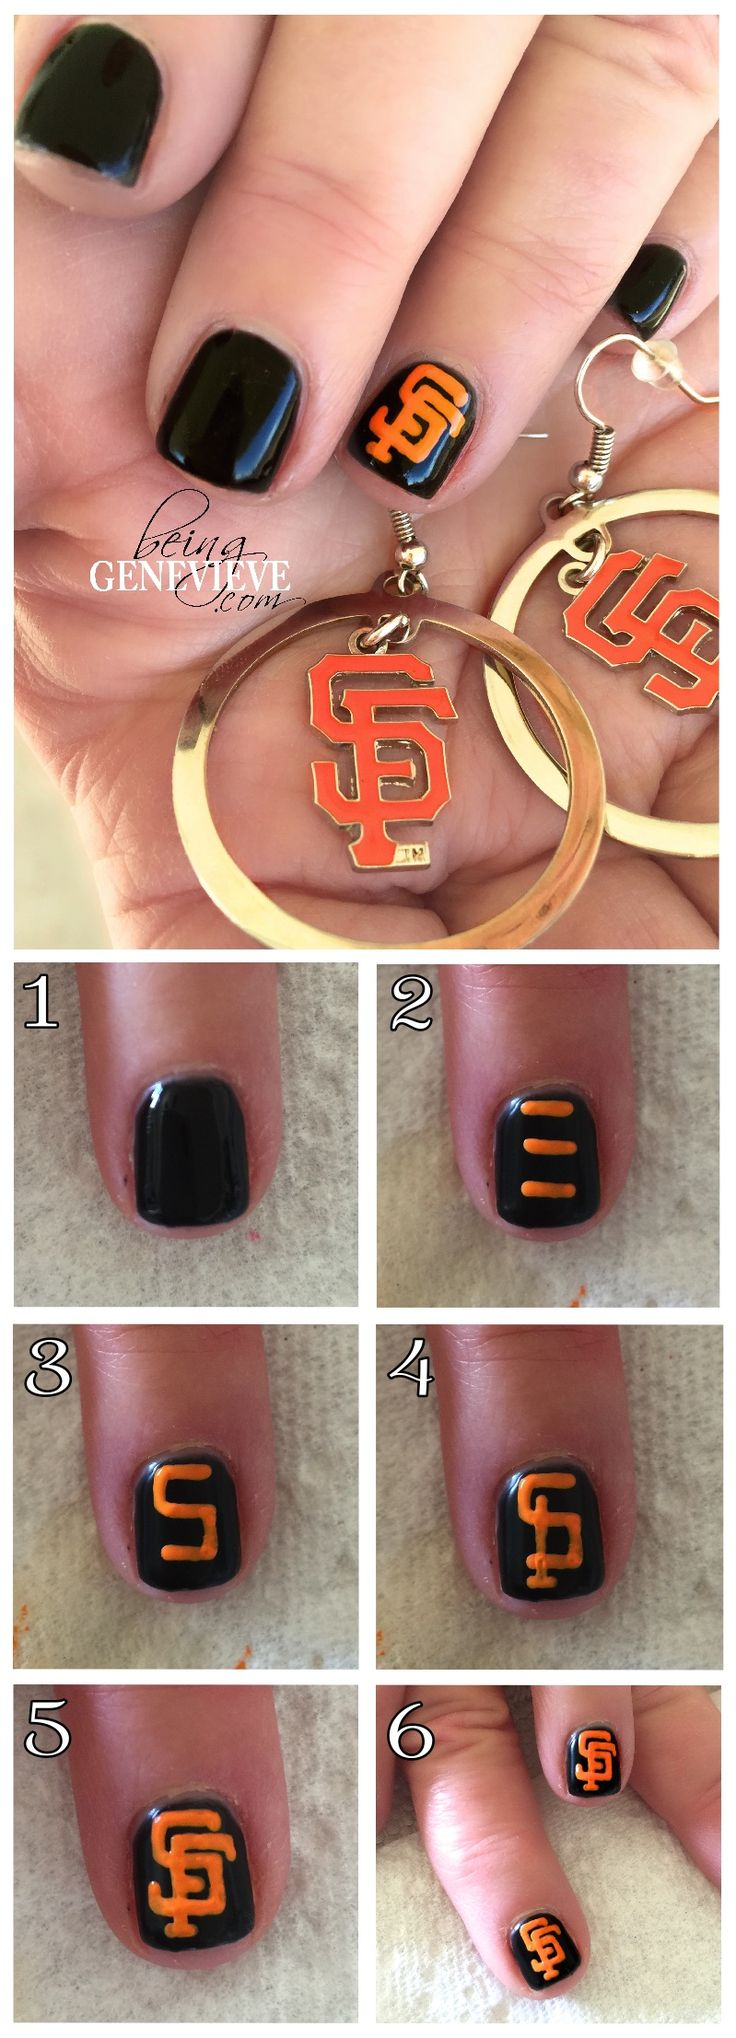 Go Giants! | Being Genevieve Here is a step-by-step nail art tutorial on how to paint the San Francisco Giants logo onto your nails.